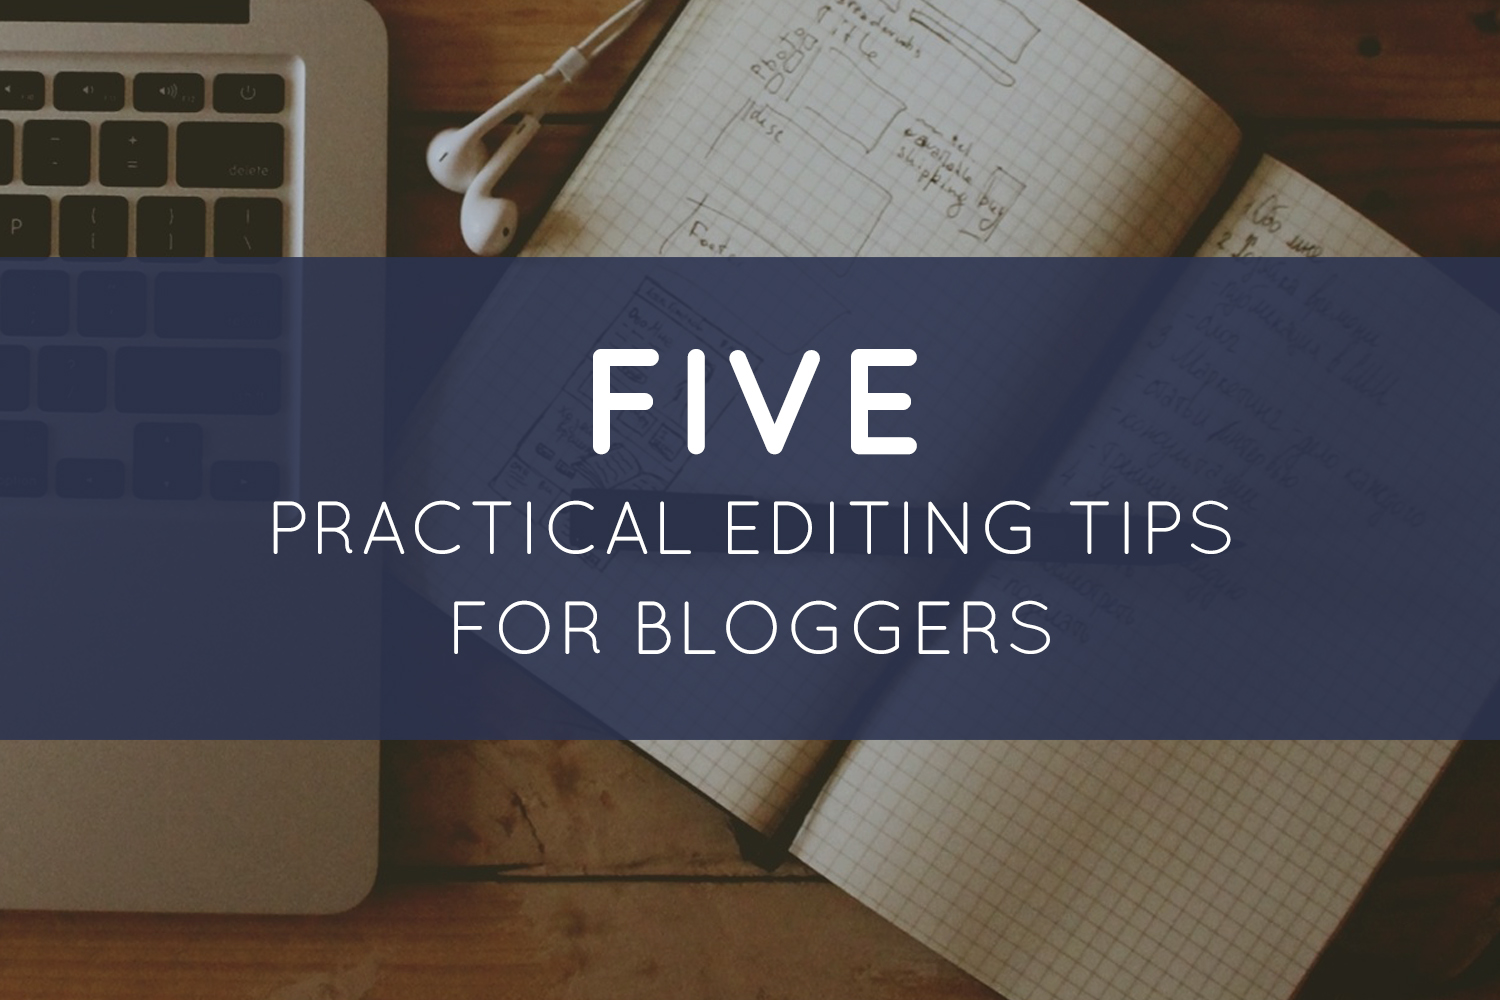 Five Practical Editing Tips for Bloggers